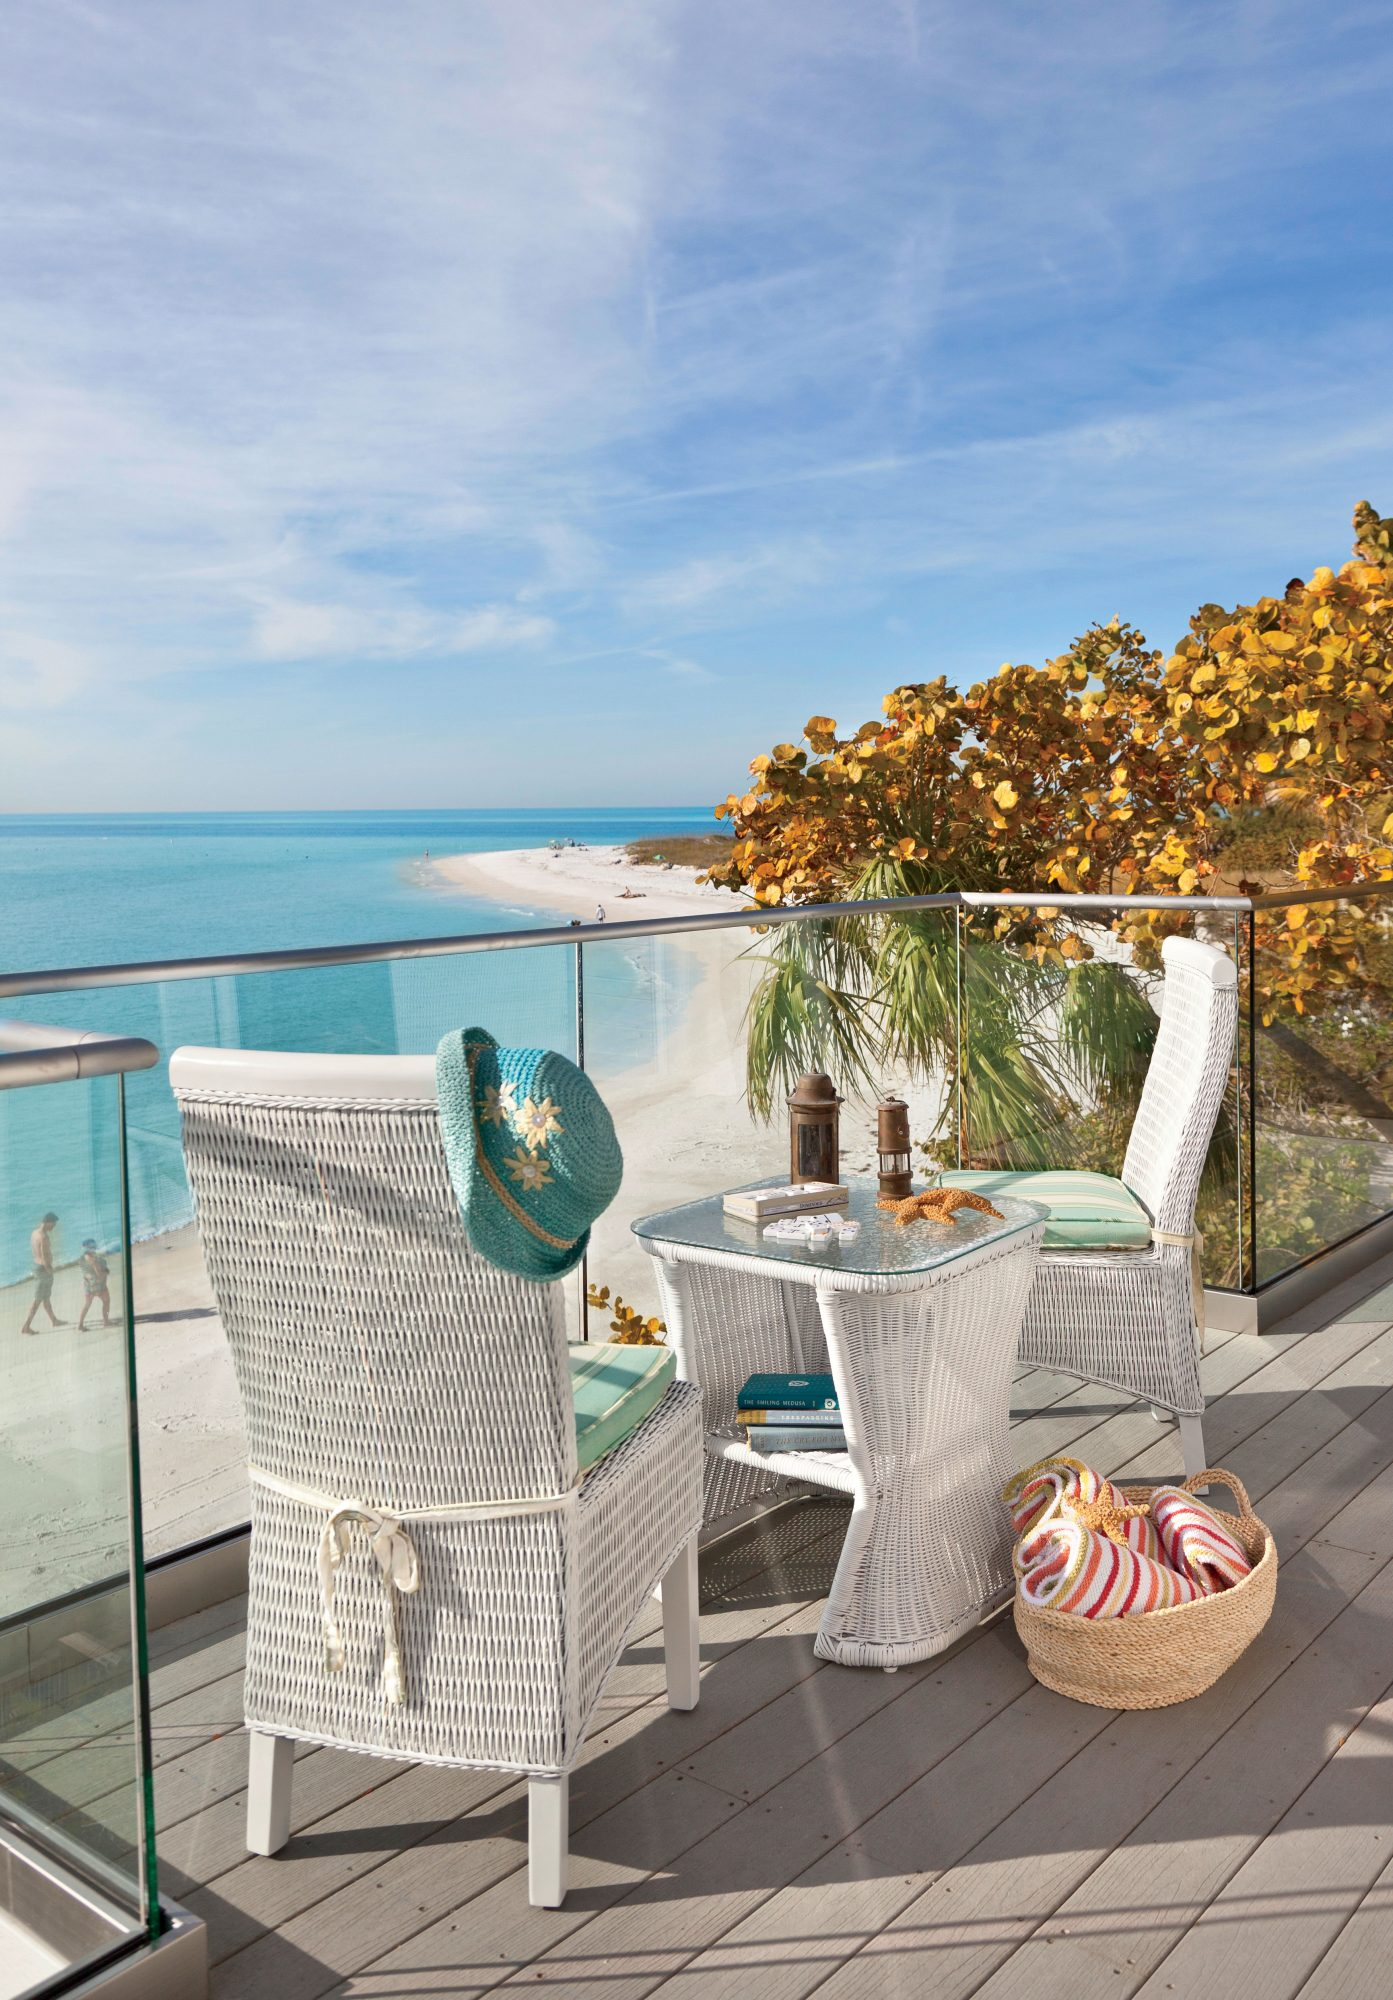 The brilliant turquoise waters of Anna Maria Island, Florida, are the star of the show on this glass-walled porch. The white wicker furnishings pop against the shoreline.